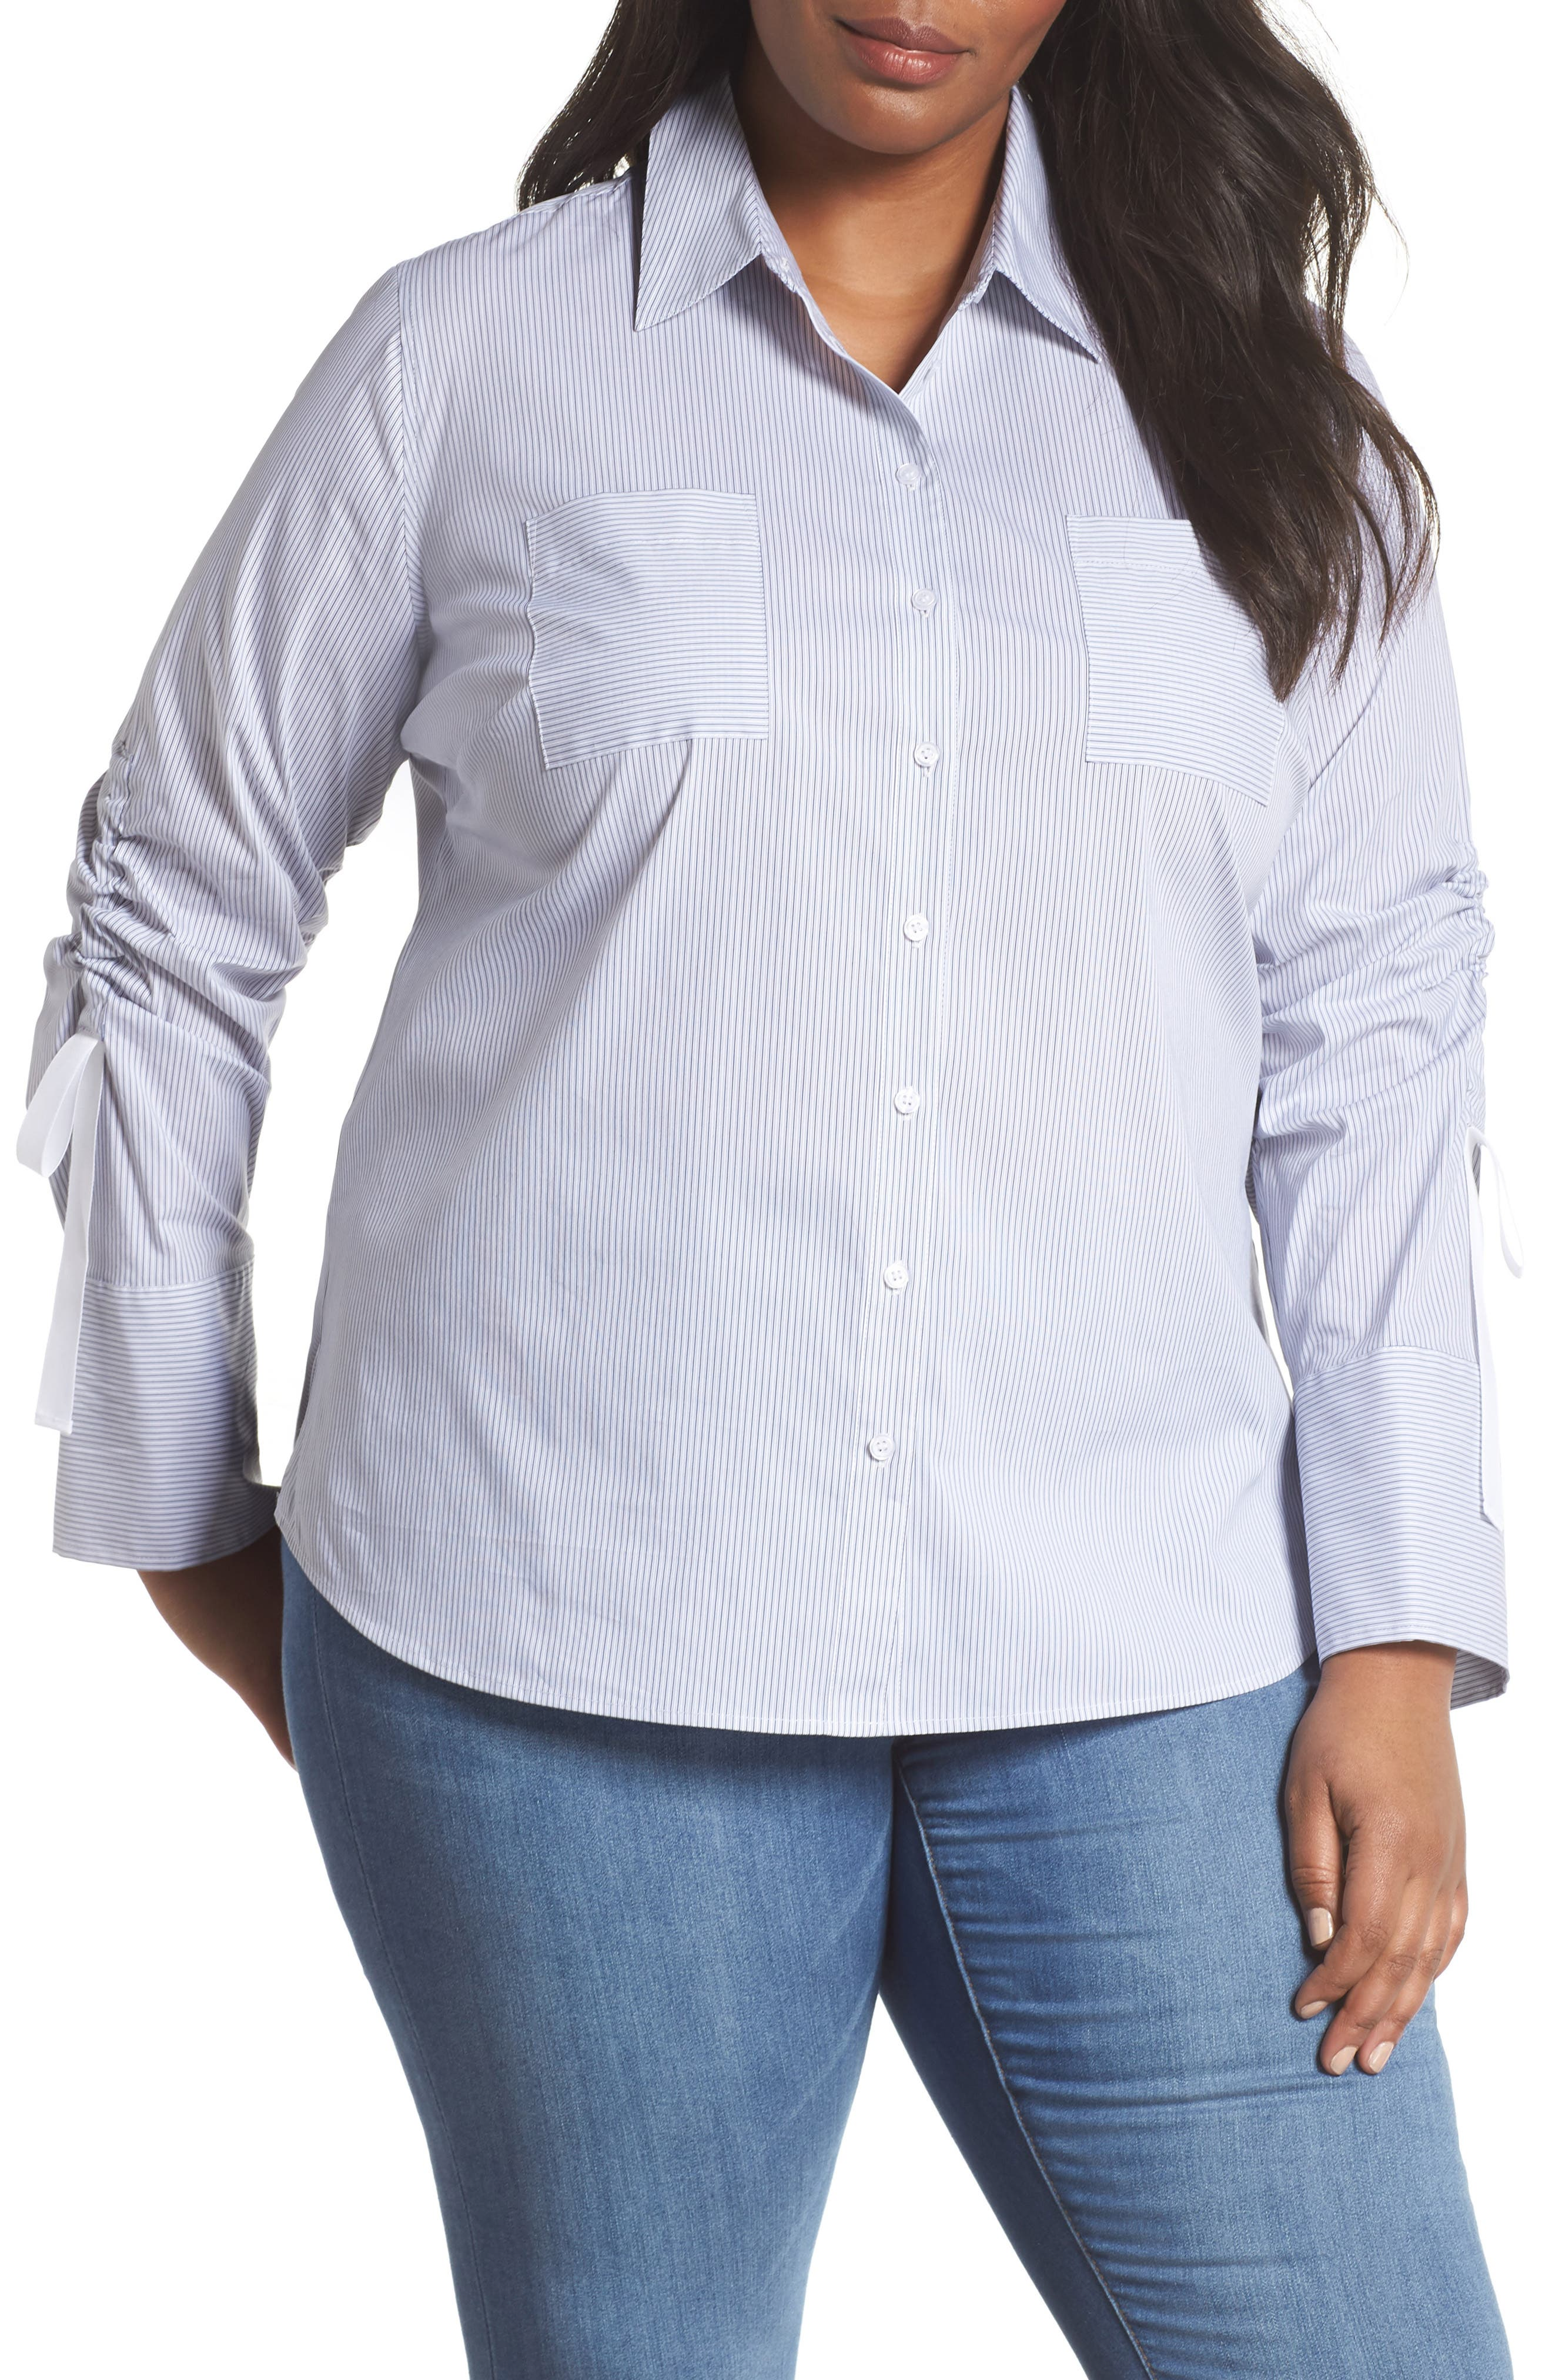 Gathered Sleeve Button Front Shirt,                             Main thumbnail 1, color,                             Blue/ White Stripe